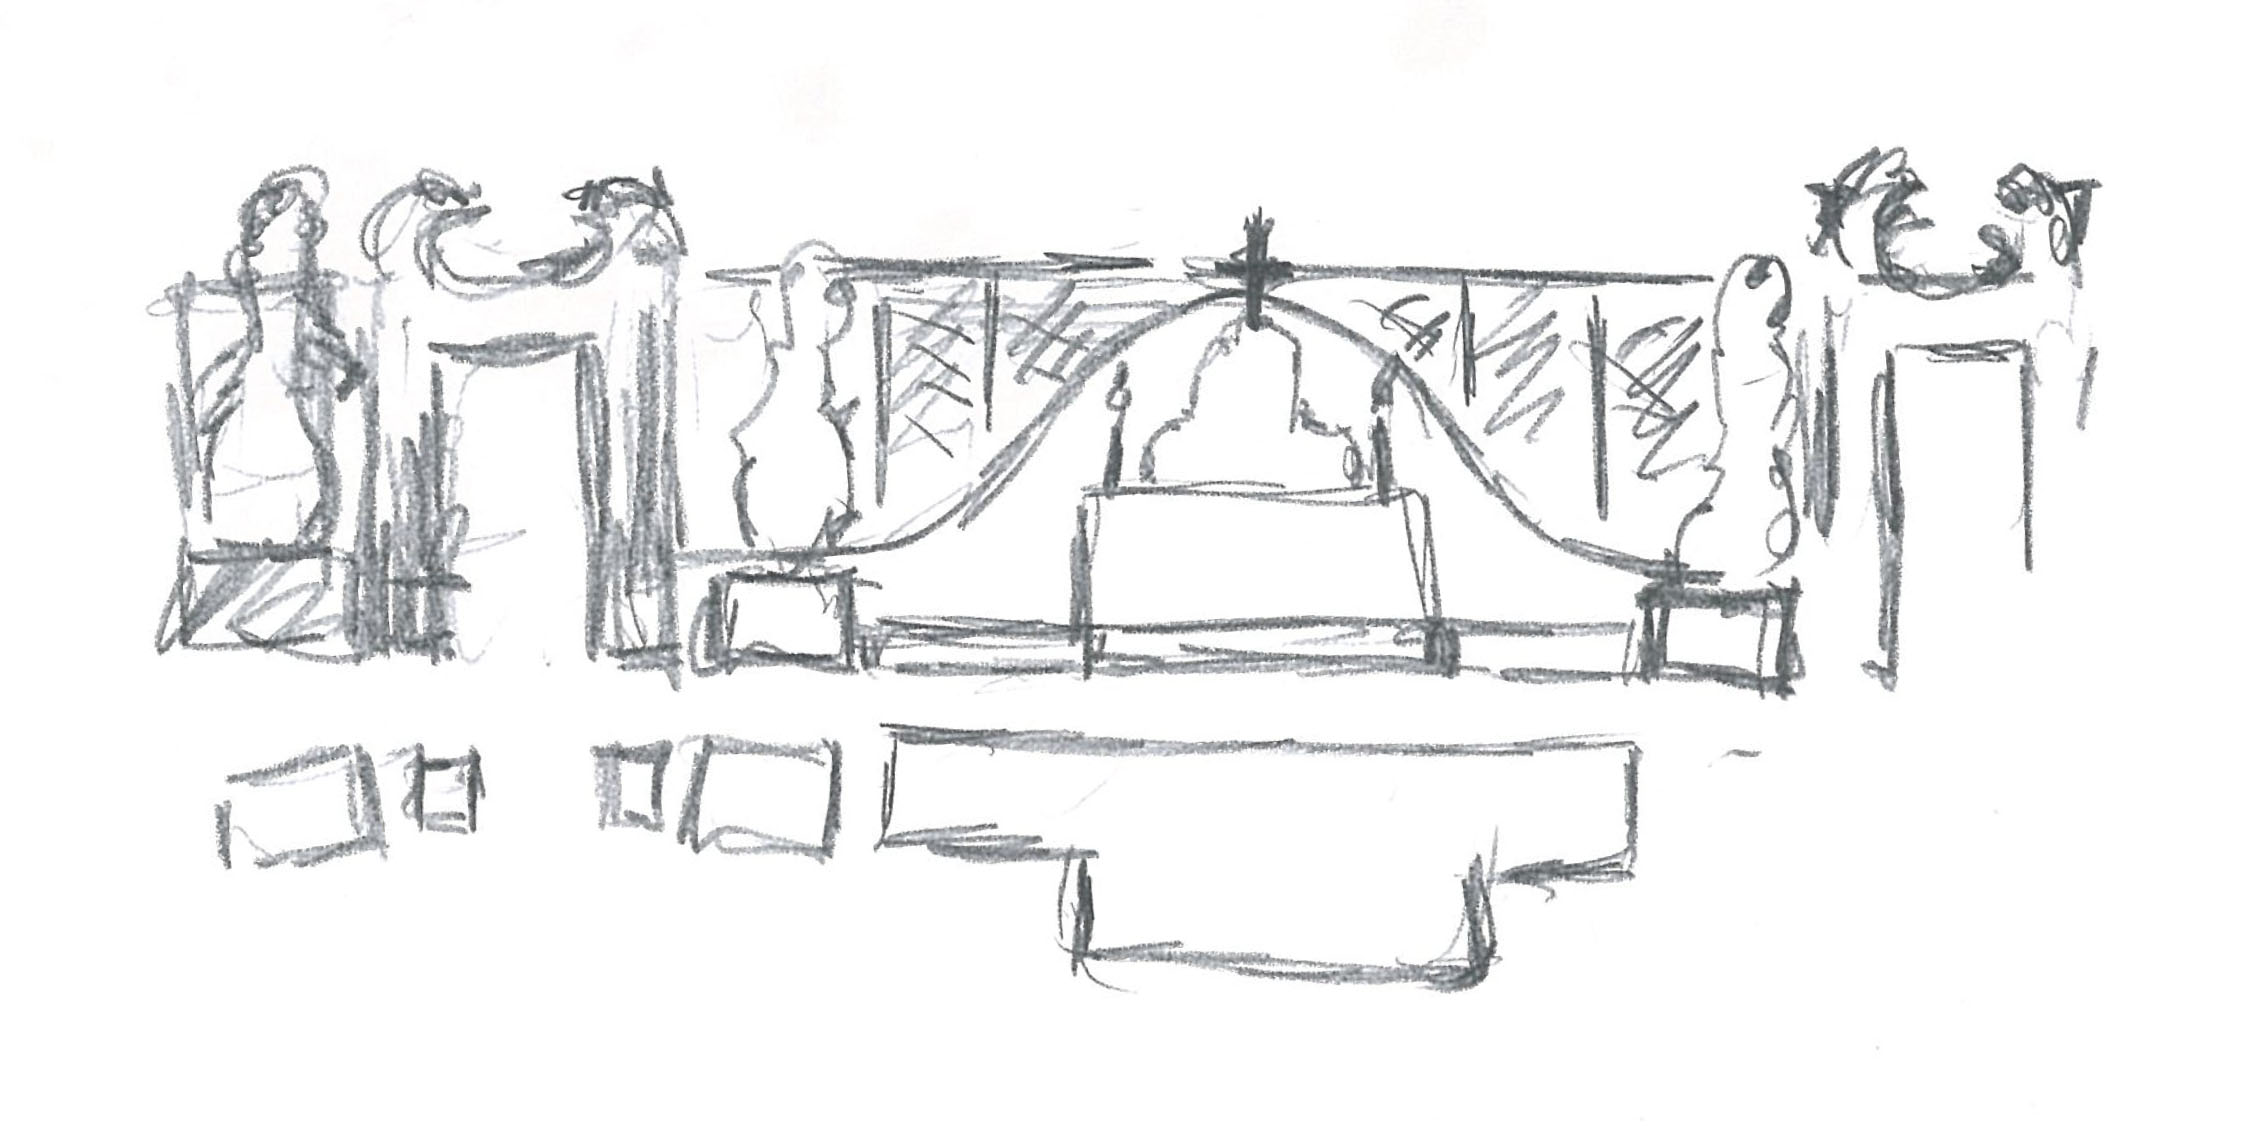 Sketches of the first design idea Fonti}